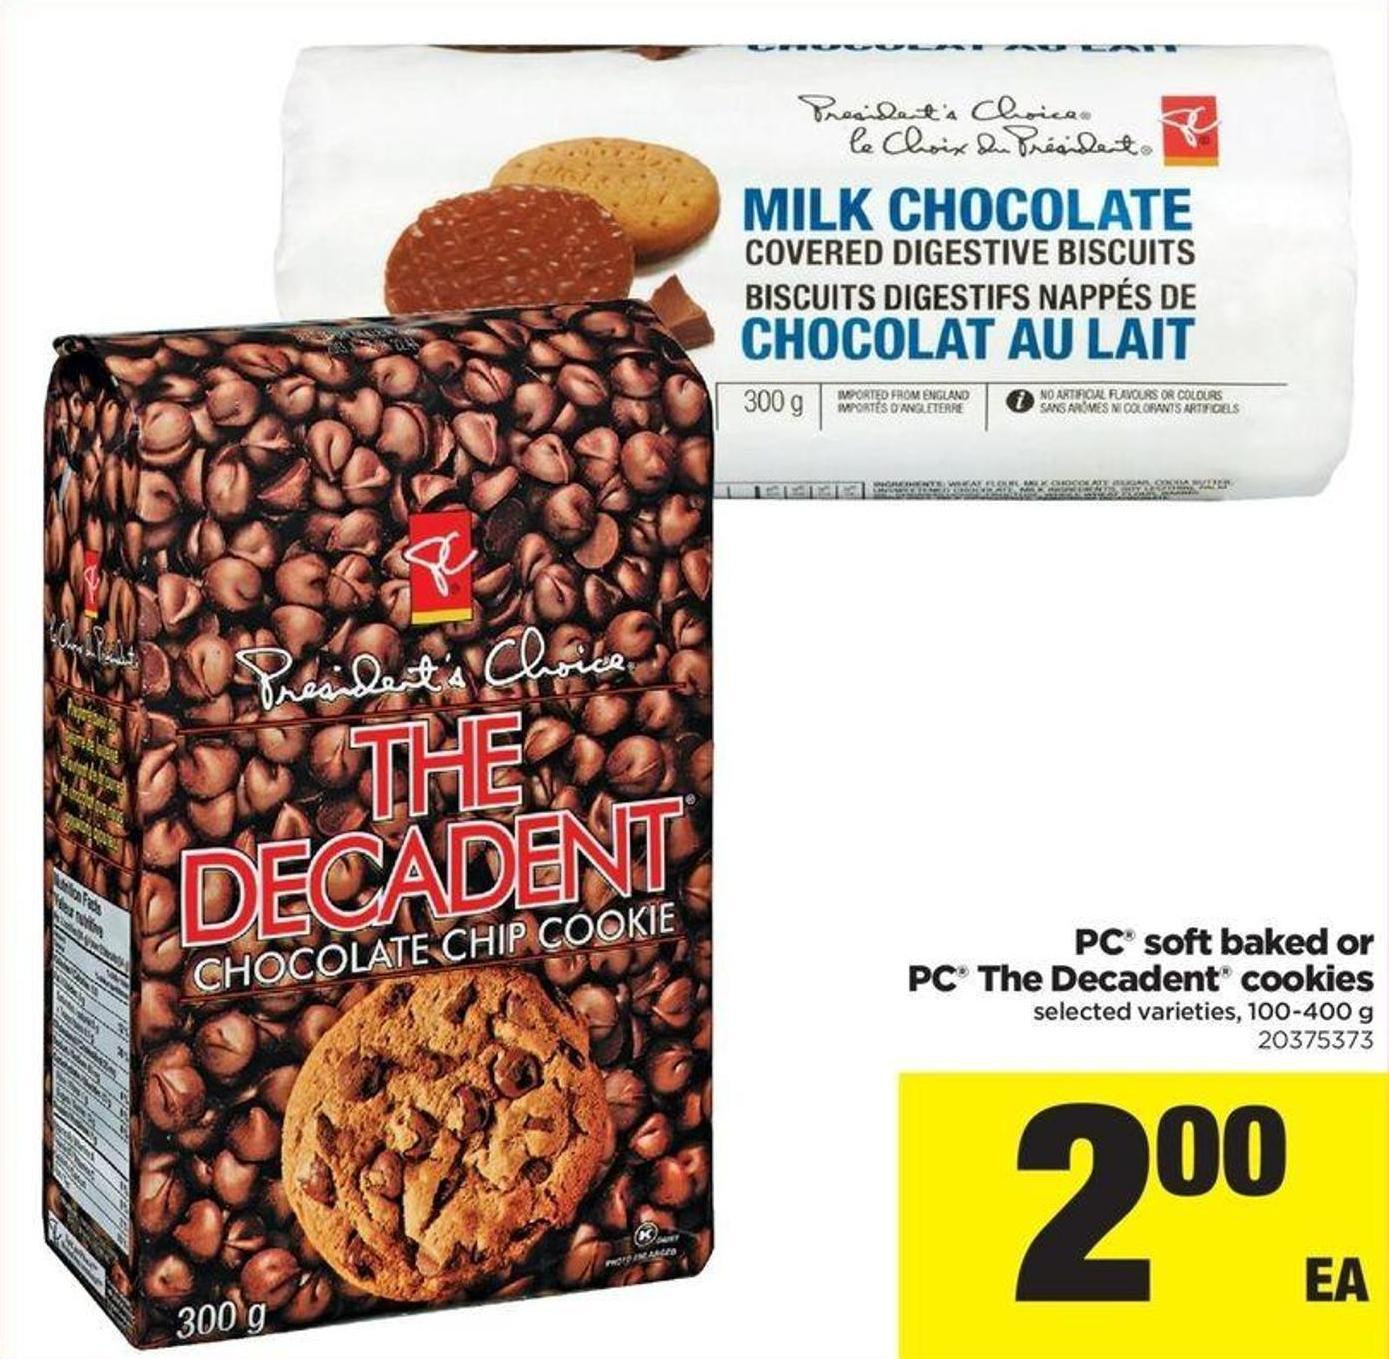 PC Soft Baked Or PC The Decadent Cookies - 100-400 G